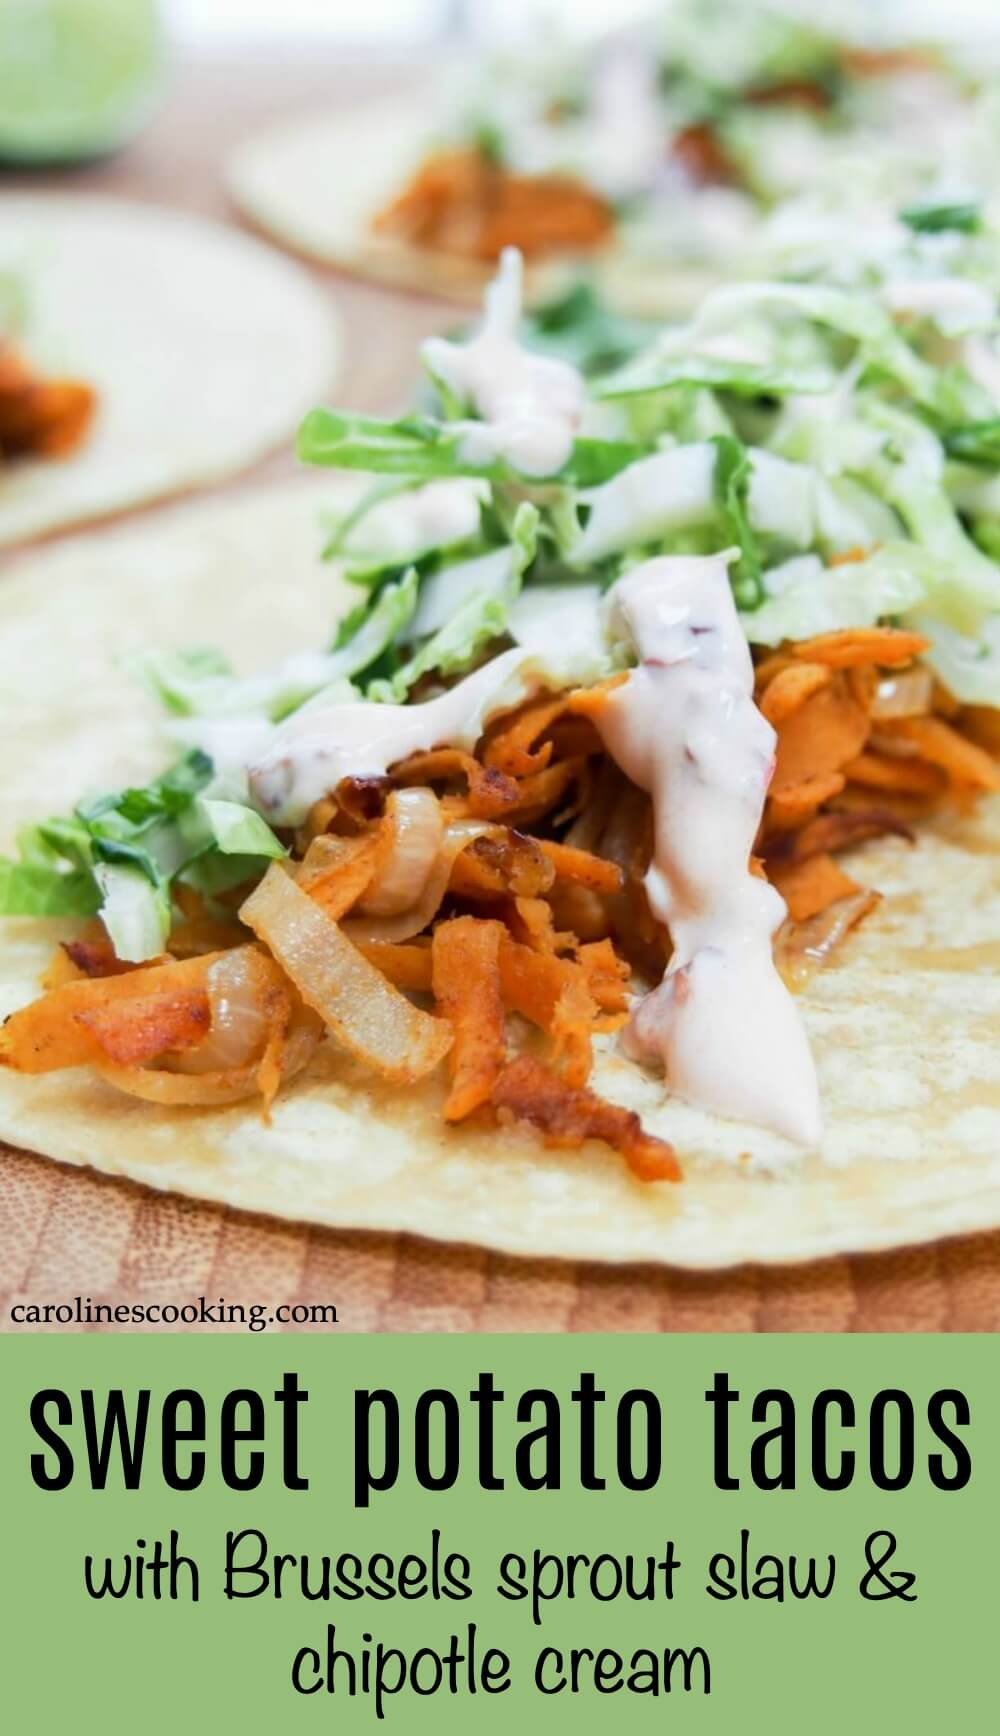 These sweet potato tacos are easy to make & thoroughly delicious. Gently spiced sweet potato, a crunchy, zesty slaw & a kick from chipotle cream. Vegetarian #taco #vegetarian #sweetpotato